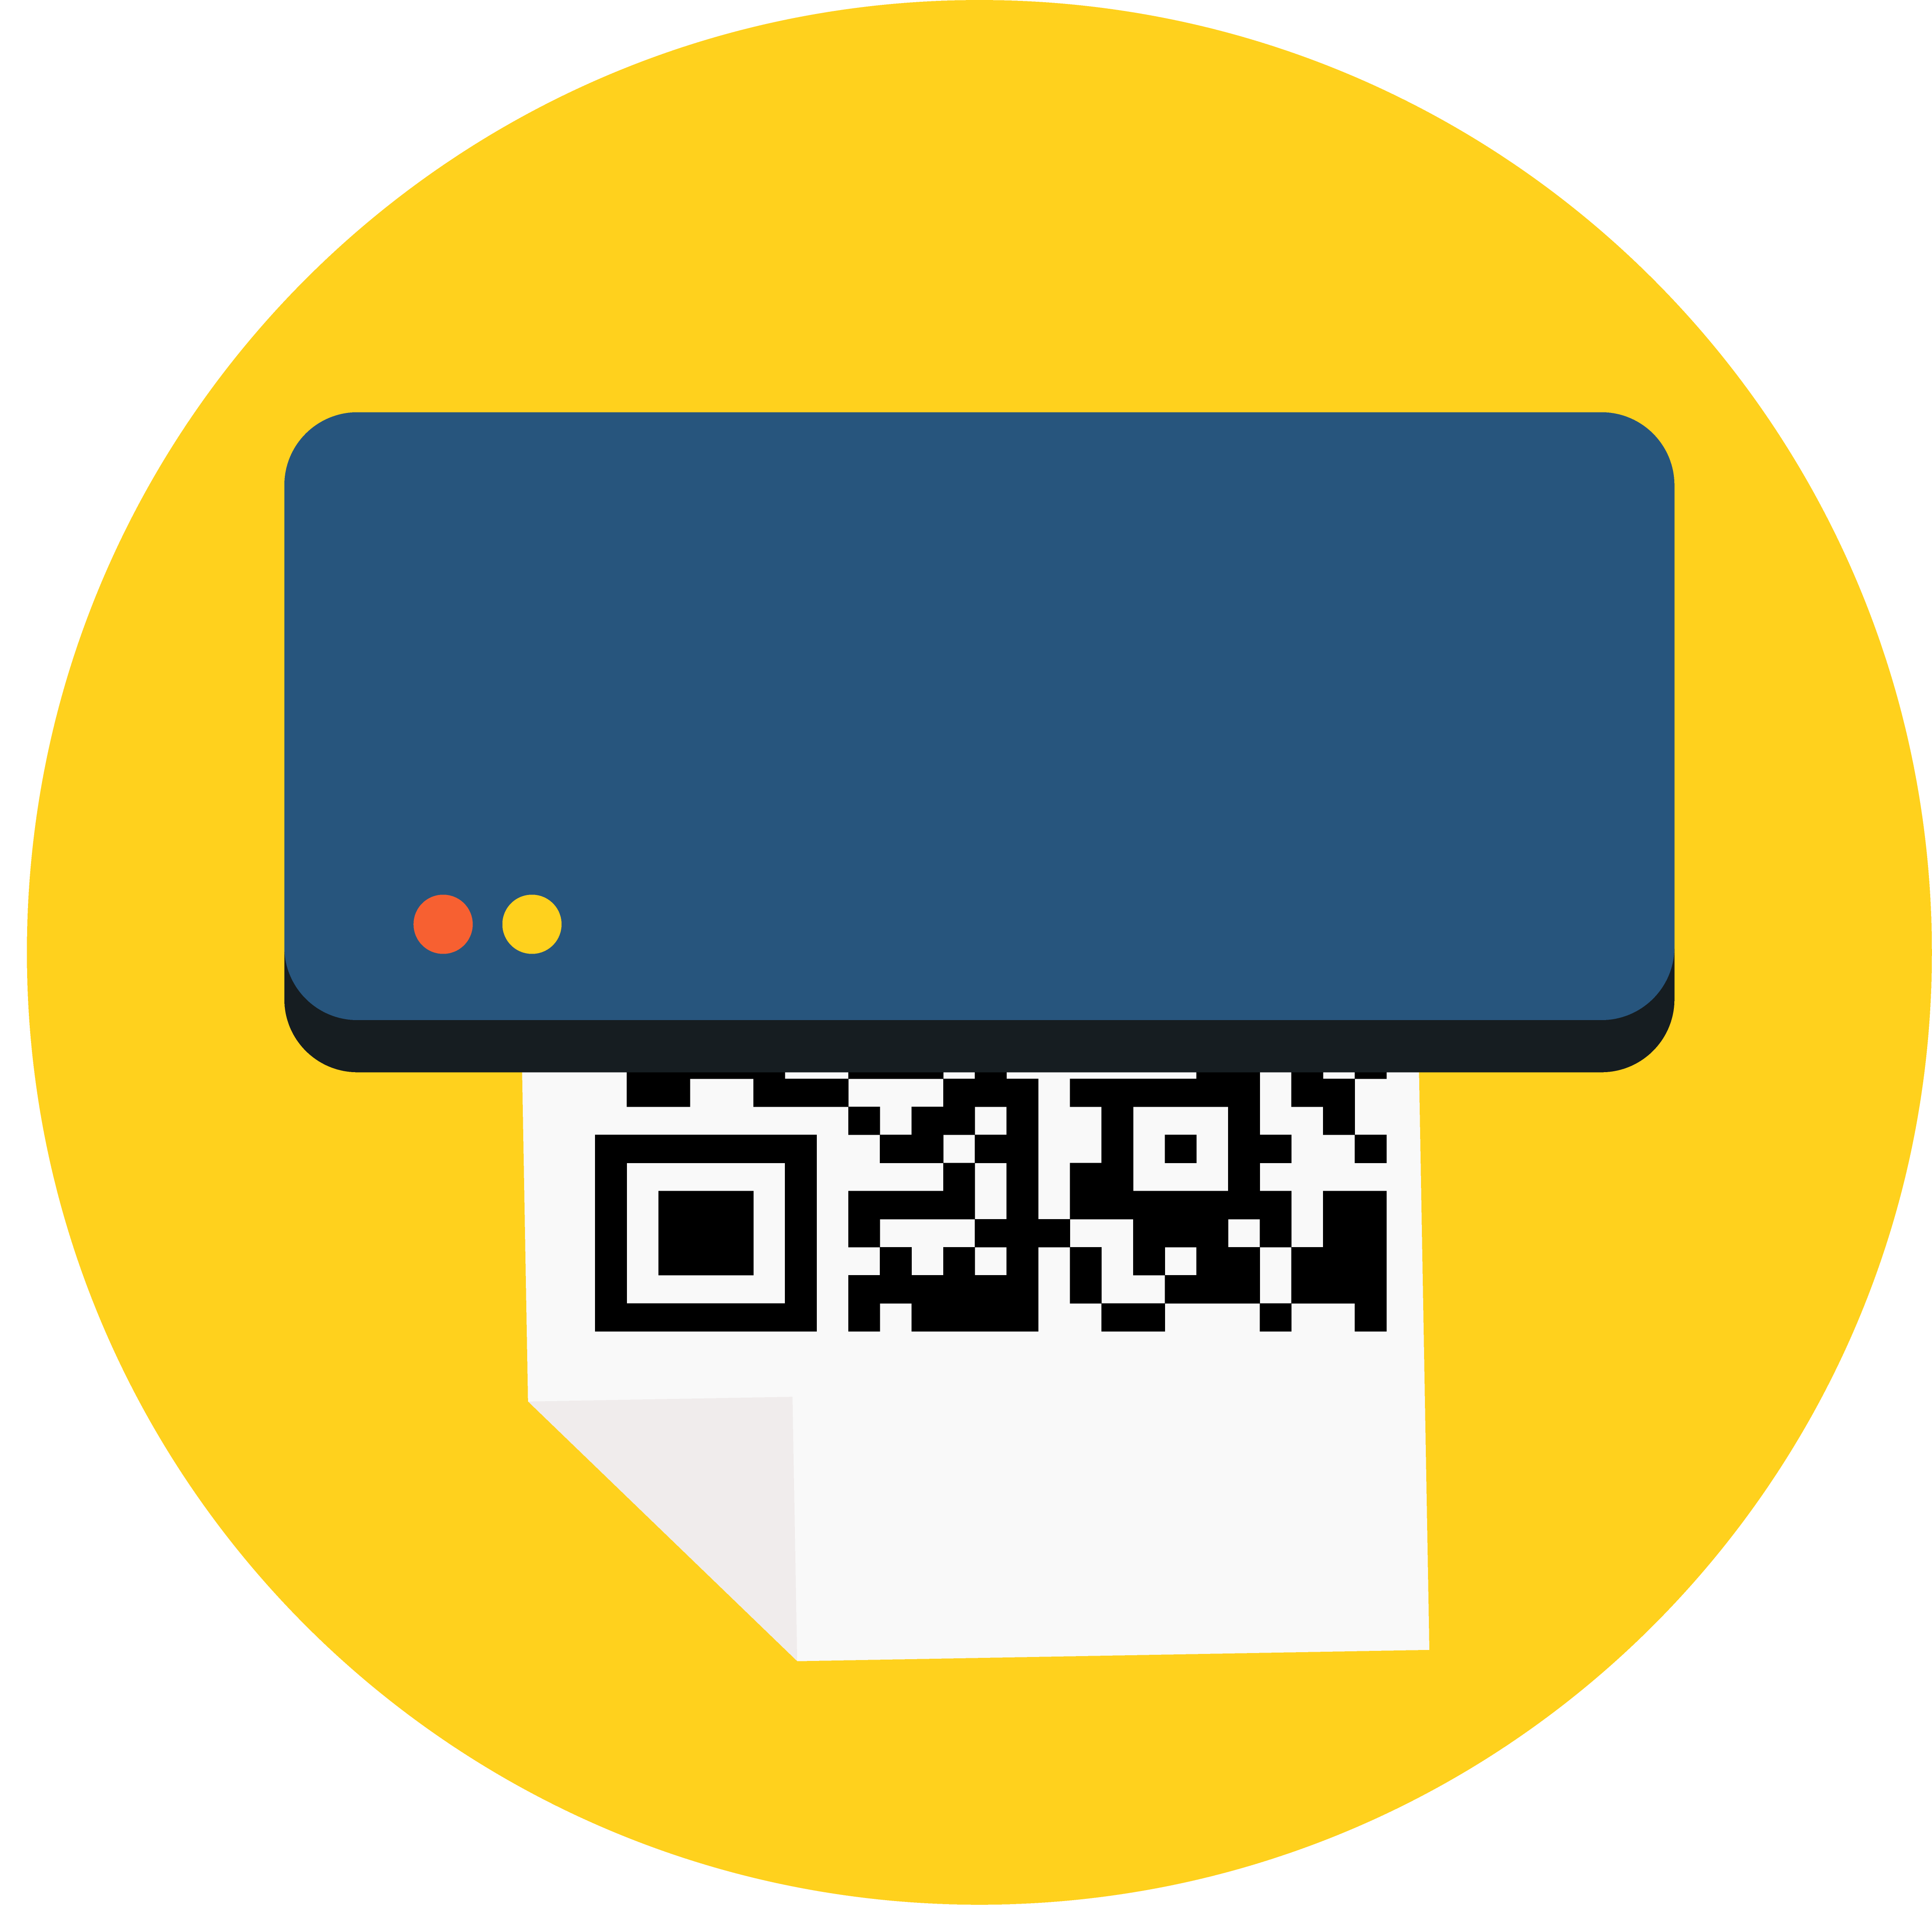 Qr code generator clipart banner freeuse library Dynamic QR code generator free online, track stats and more banner freeuse library